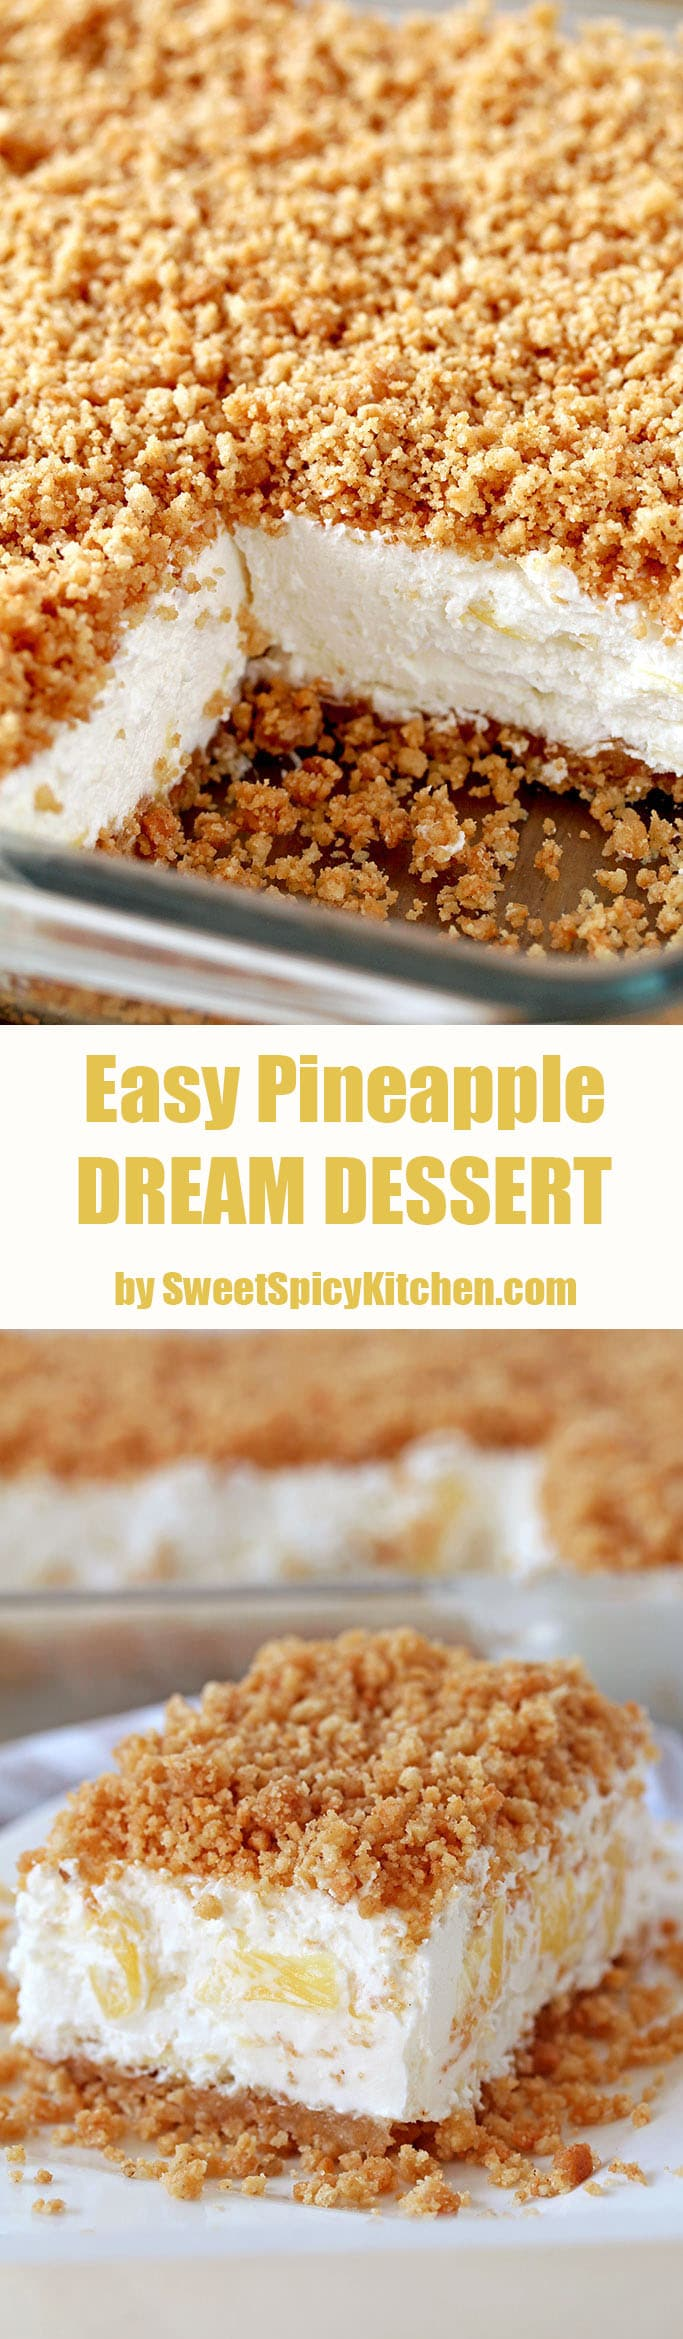 Easy Pineapple Dream Dessert a light and fluffy, quick and easy no bake creamy summer dessert. This creamy treat, made of crushed pineapple, cream cheese, butter and whipped cream and crunchy graham cracker layer, topped with graham cracker crumbs is a perfect way to sweeten hot summer days.